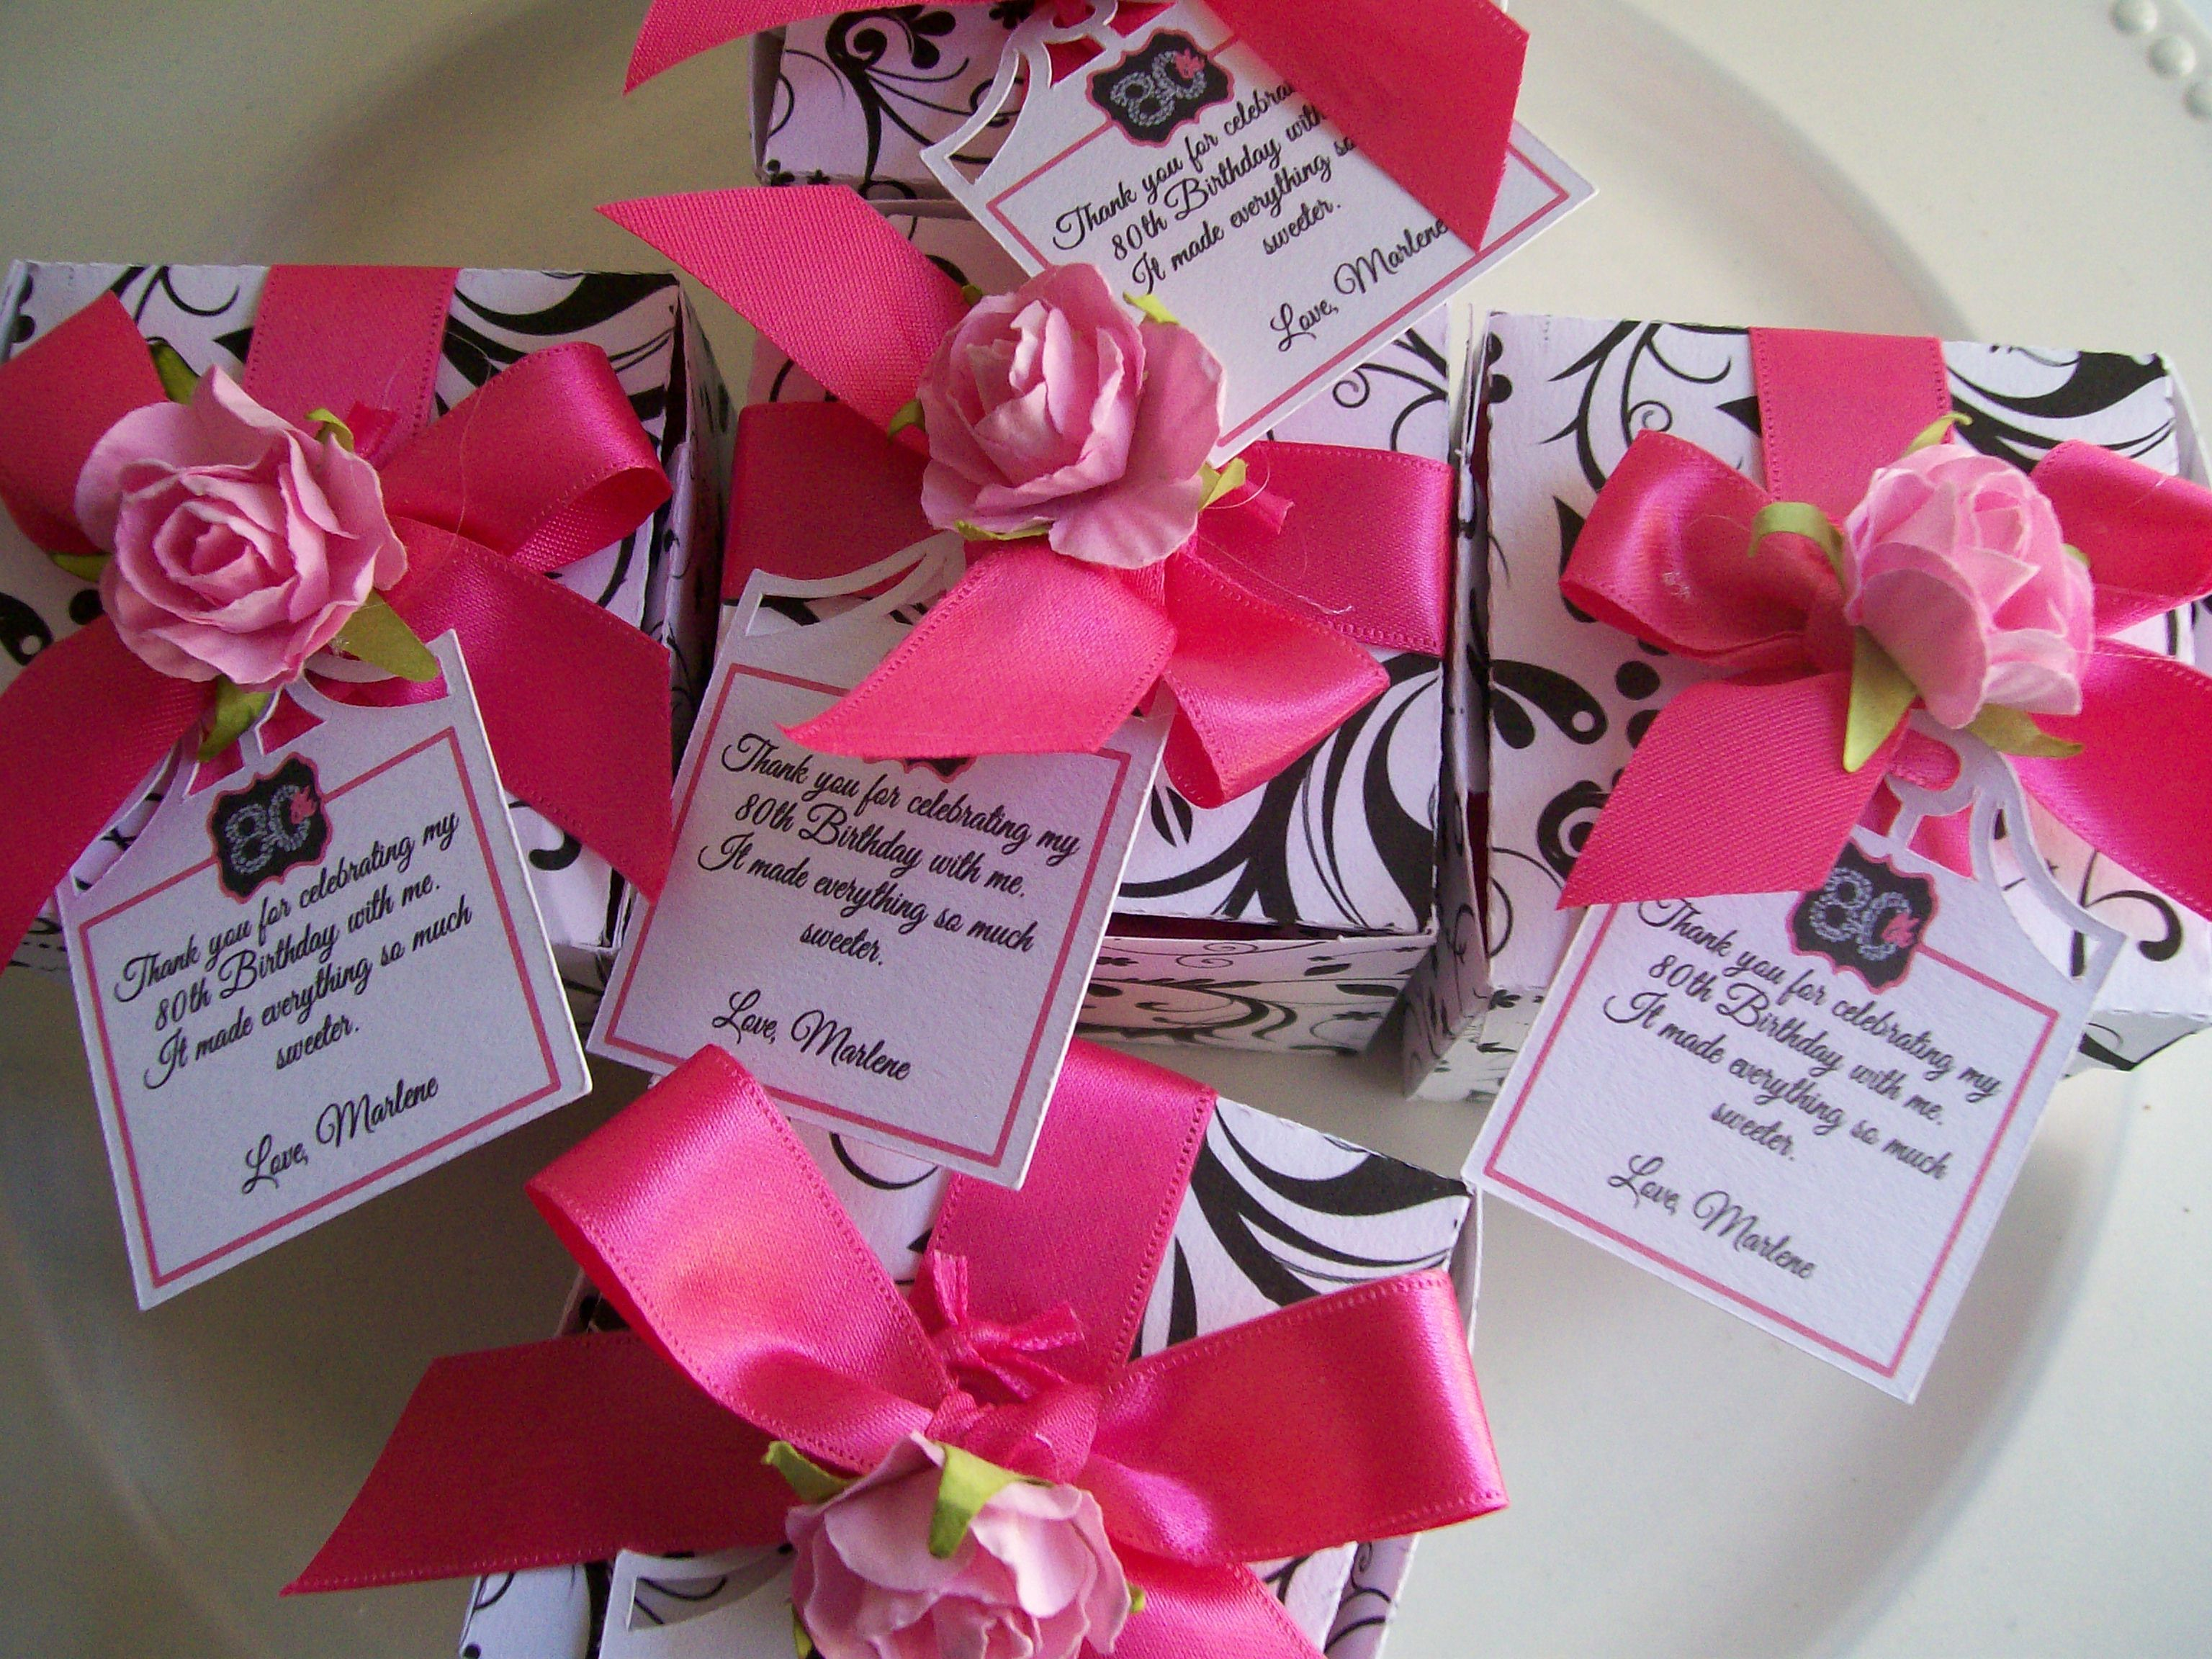 Lovely Pictures Of 60th Birthday Party Favors - Best Home Design ...